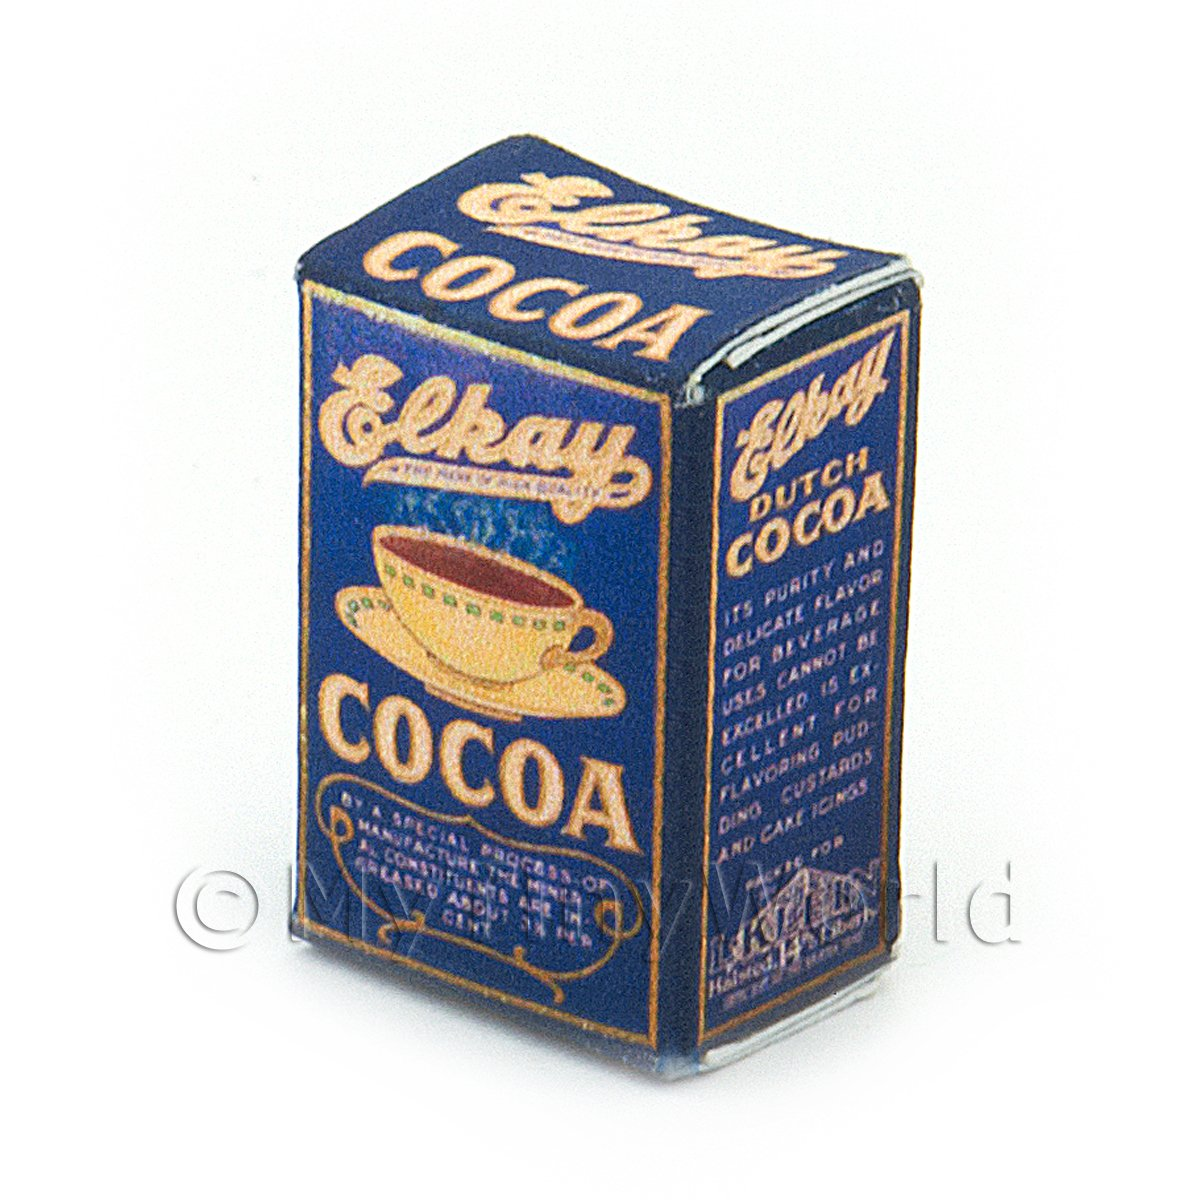 Dolls House Miniature Elkay Cocoa Box From 1900-1950